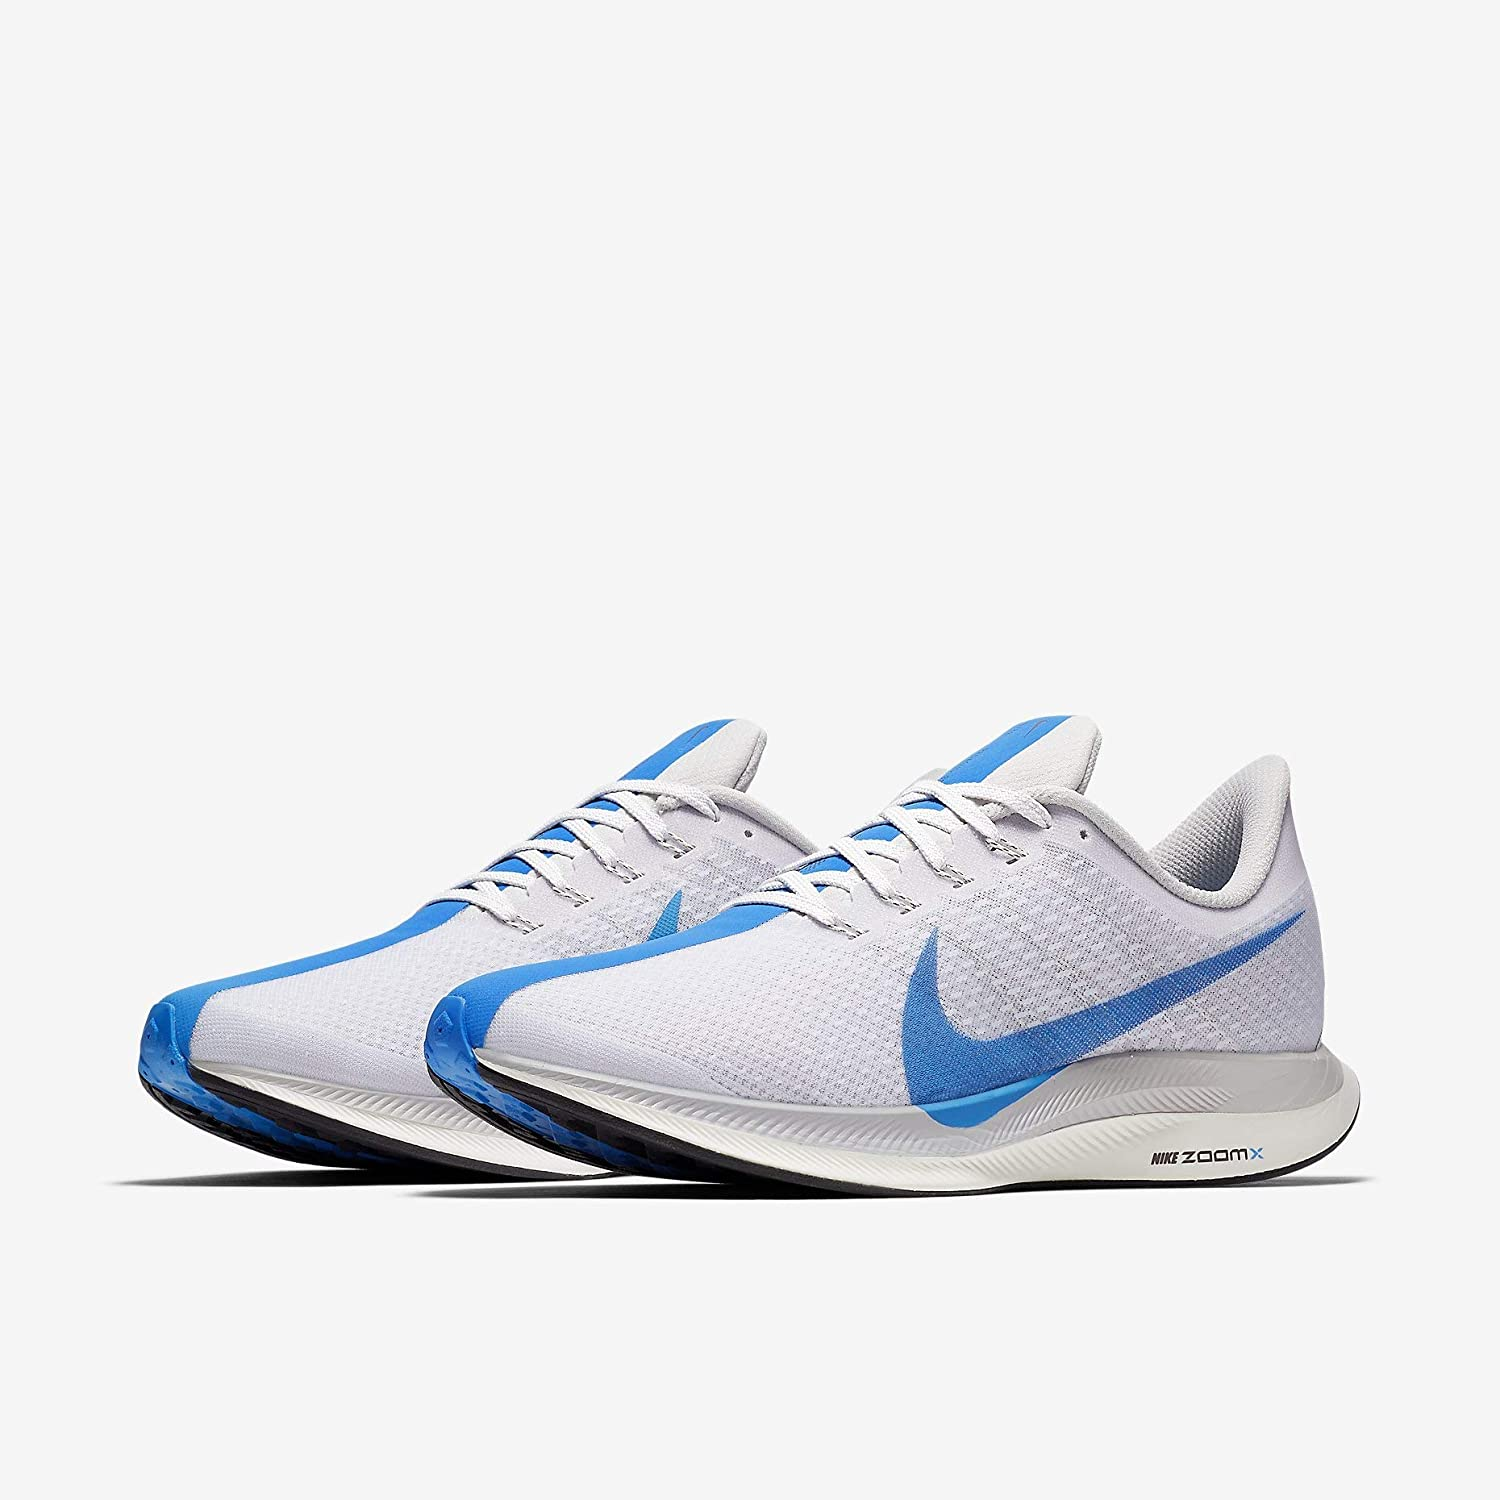 Amazon.com | NIKE Mens Air Zoom Pegasus 35 Turbo Running Shoes (11.5, White/Blue) | Shoes